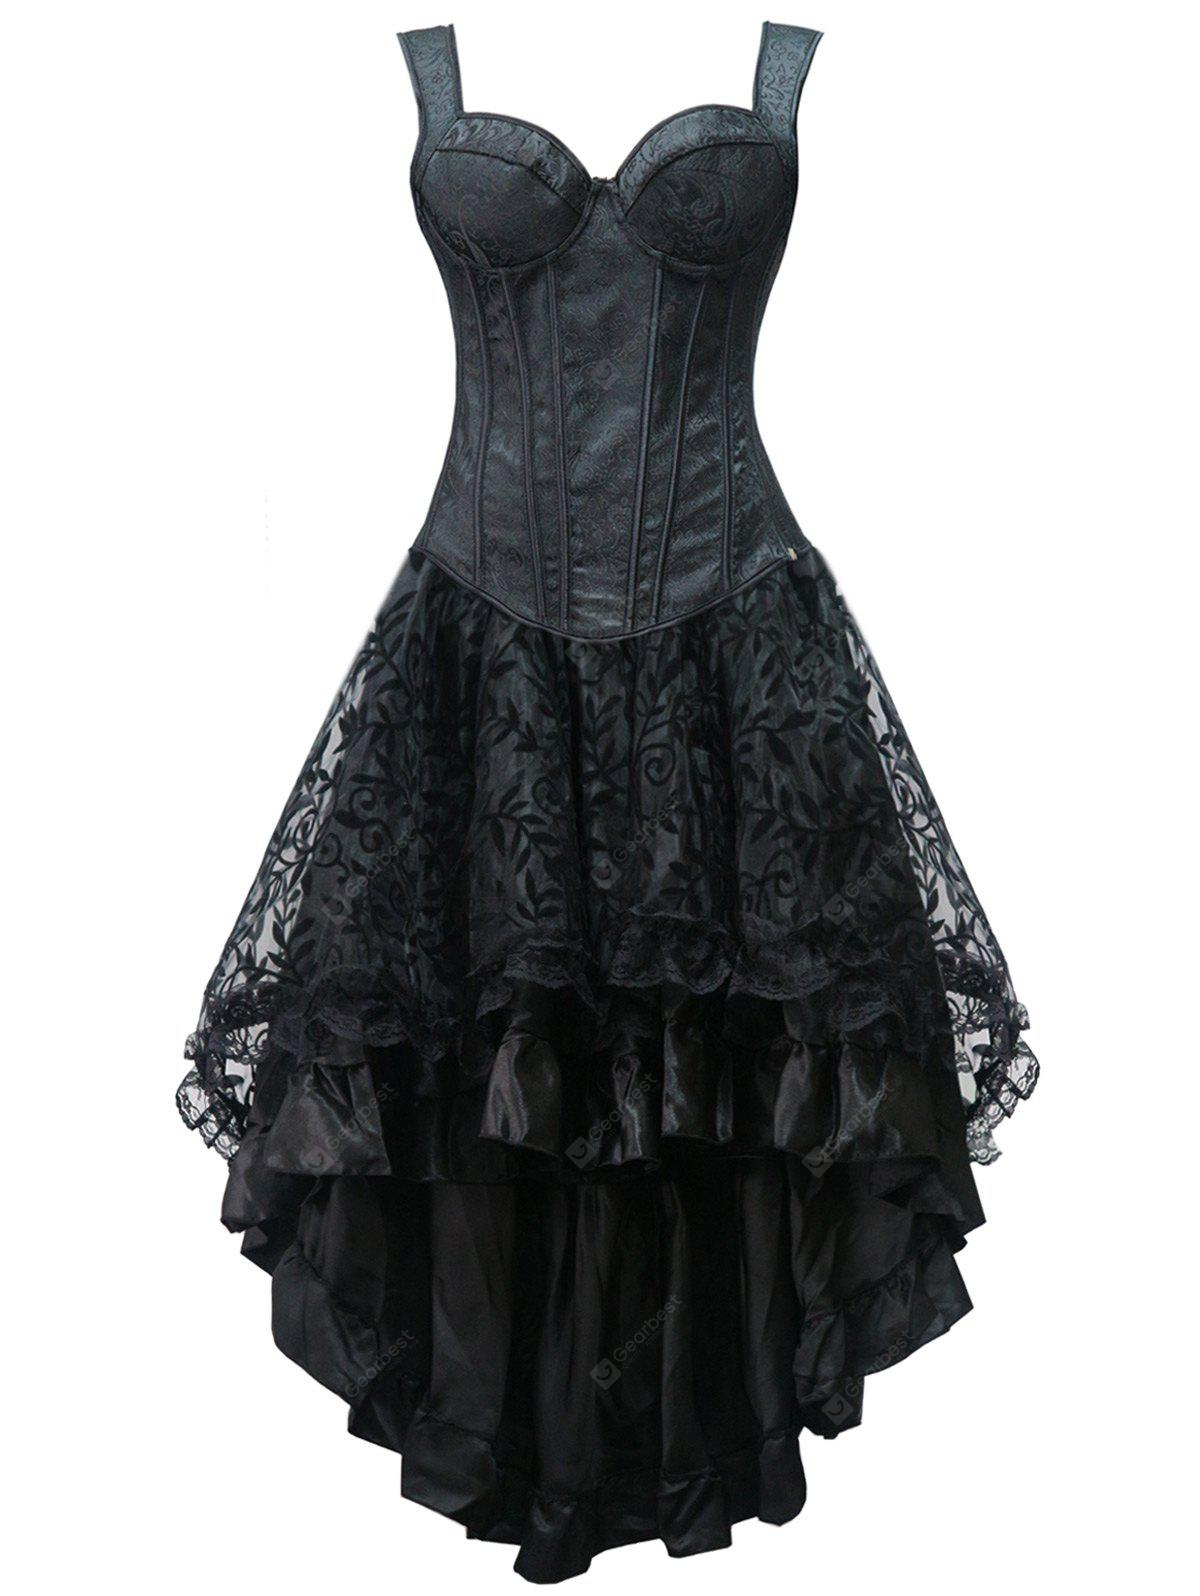 Lace Up High Low Steel Boned Corset Dress